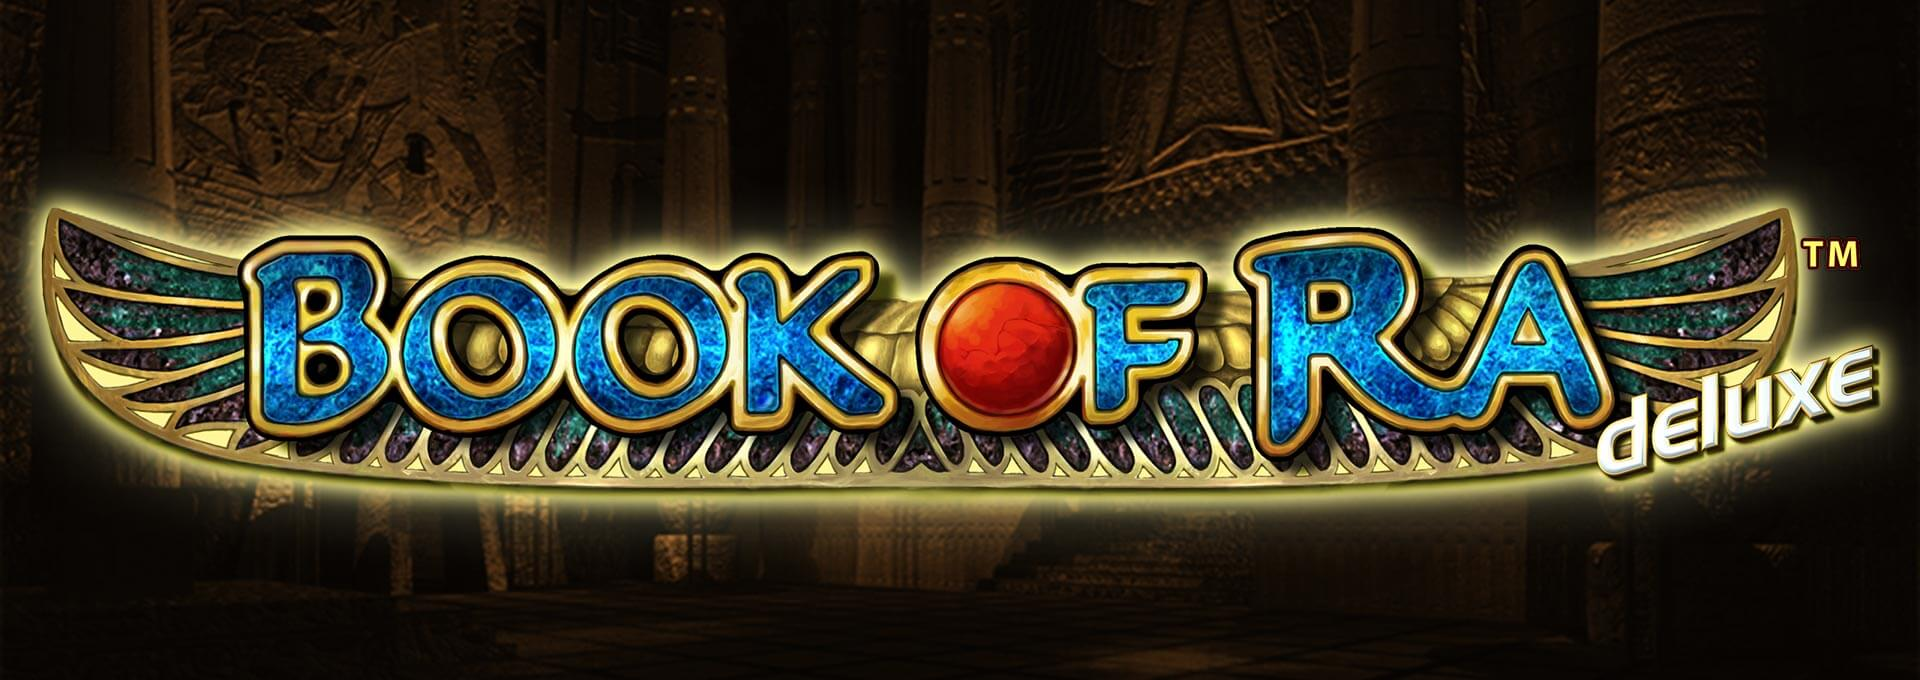 online casino gambling casino online spielen book of ra